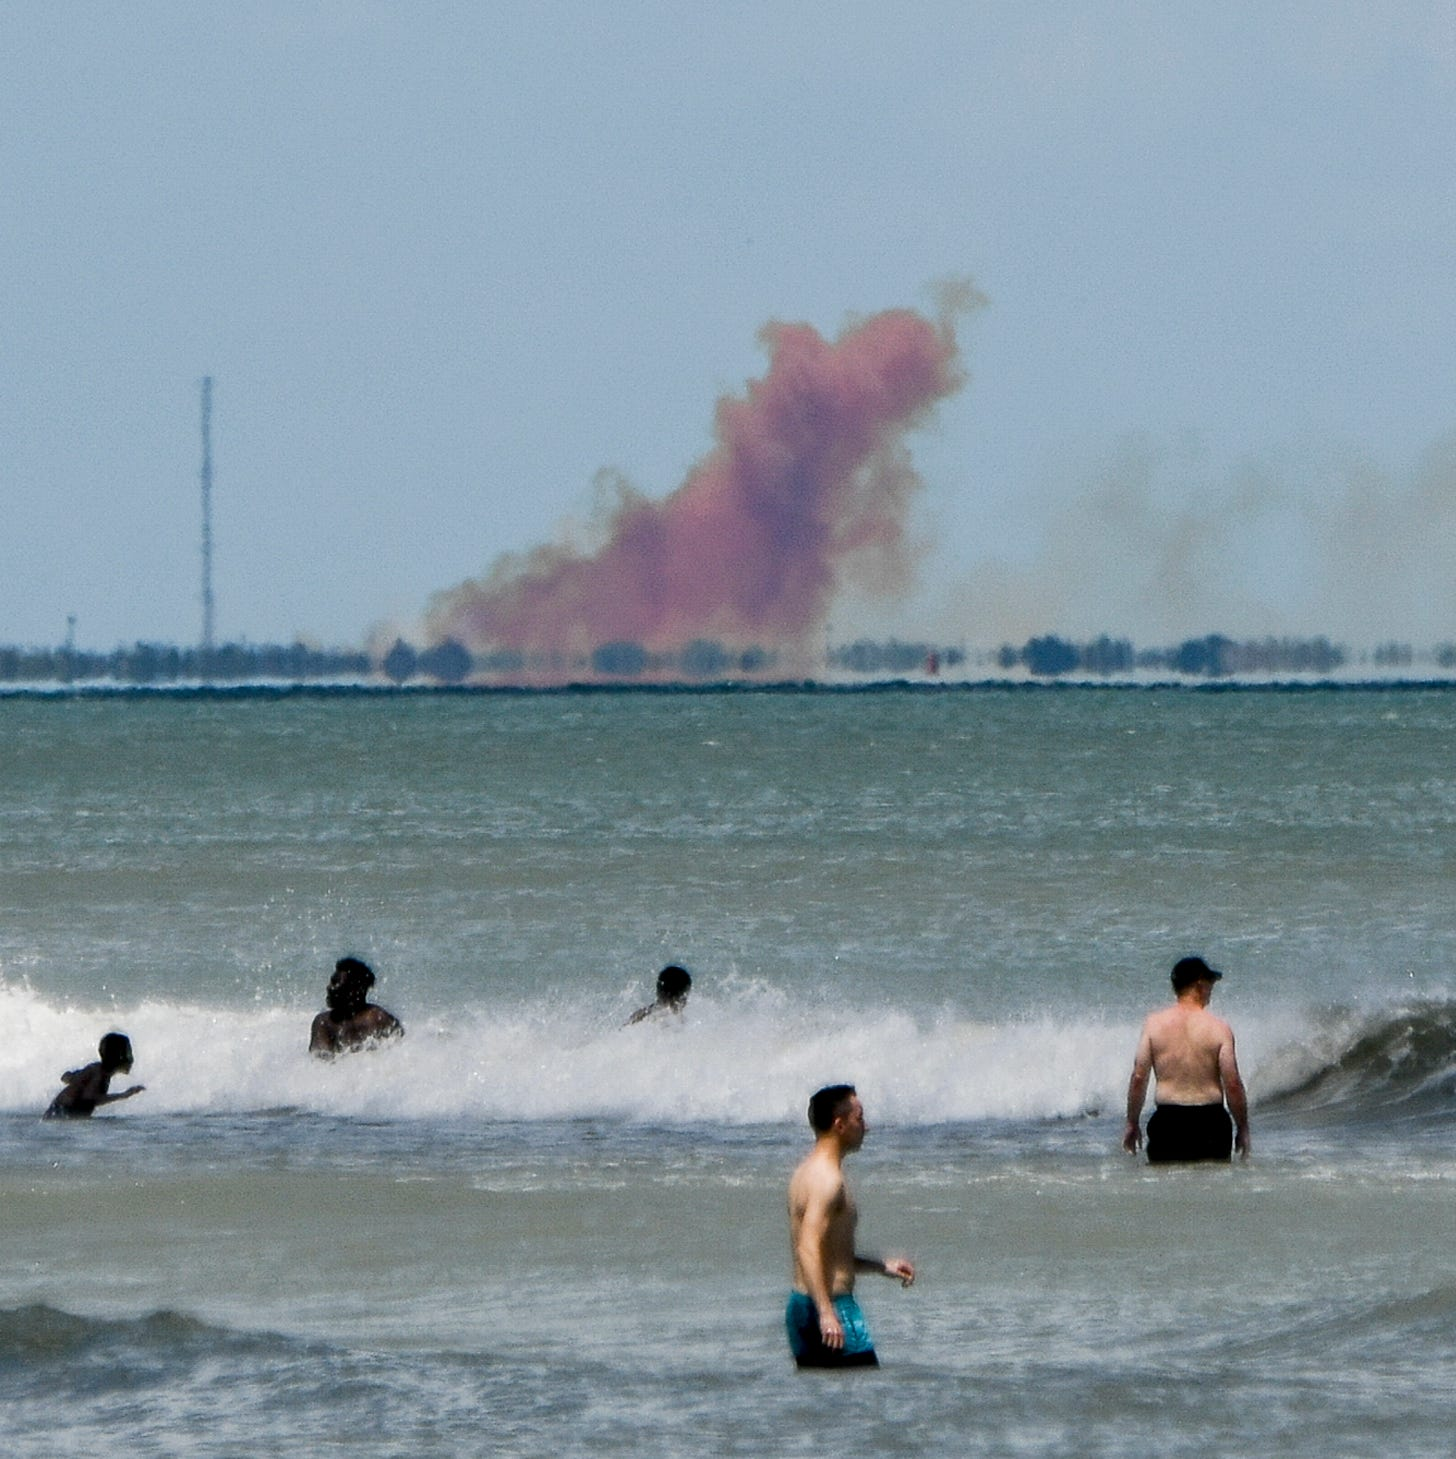 SpaceX cleaning up Cape Canaveral landing zone after Crew Dragon explosion